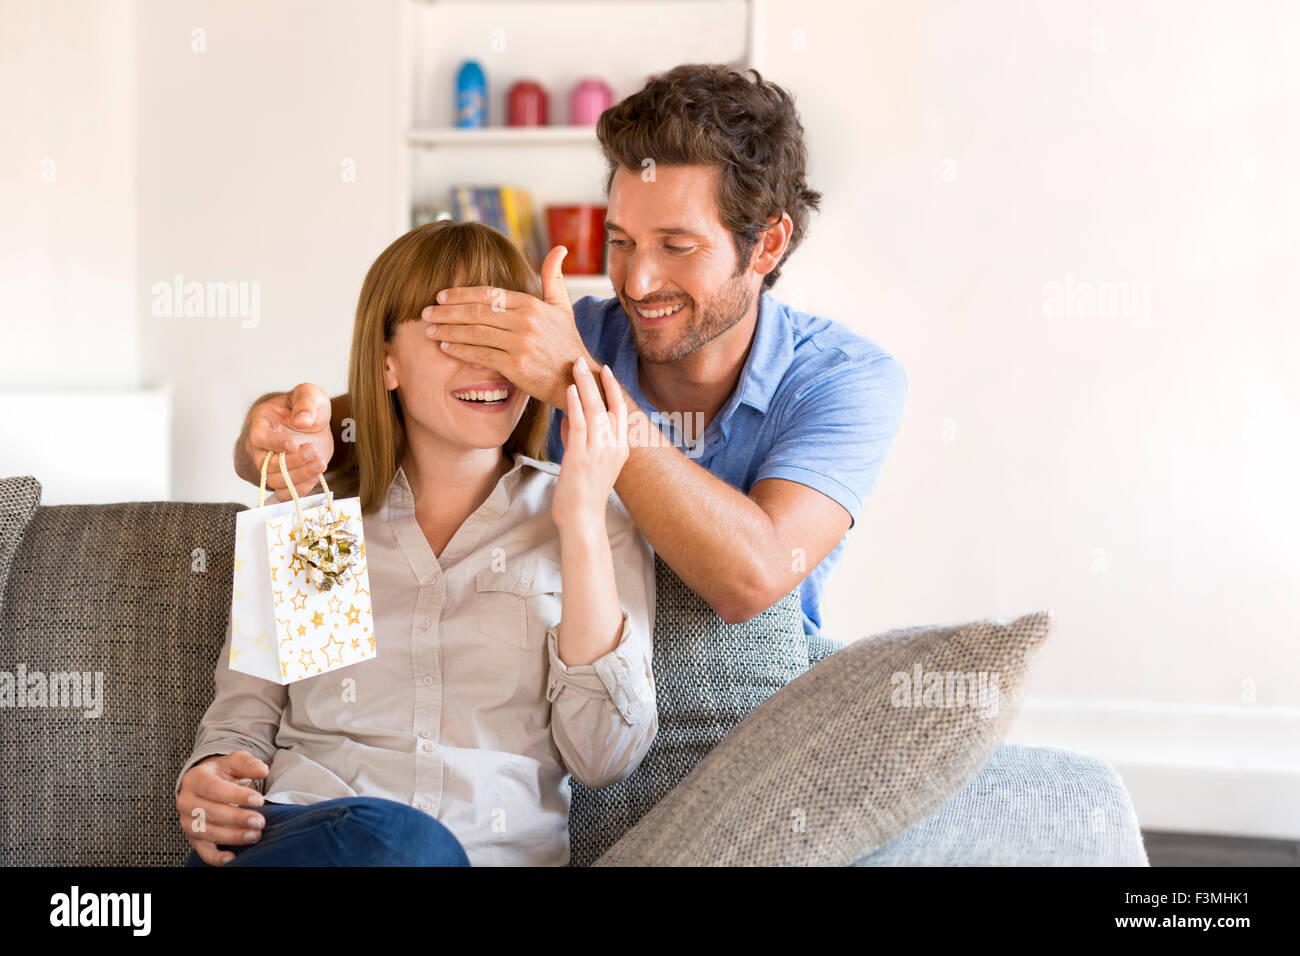 This gift for the woman of my life. Home, surprise, couch, present, couple, valentine - Stock Image